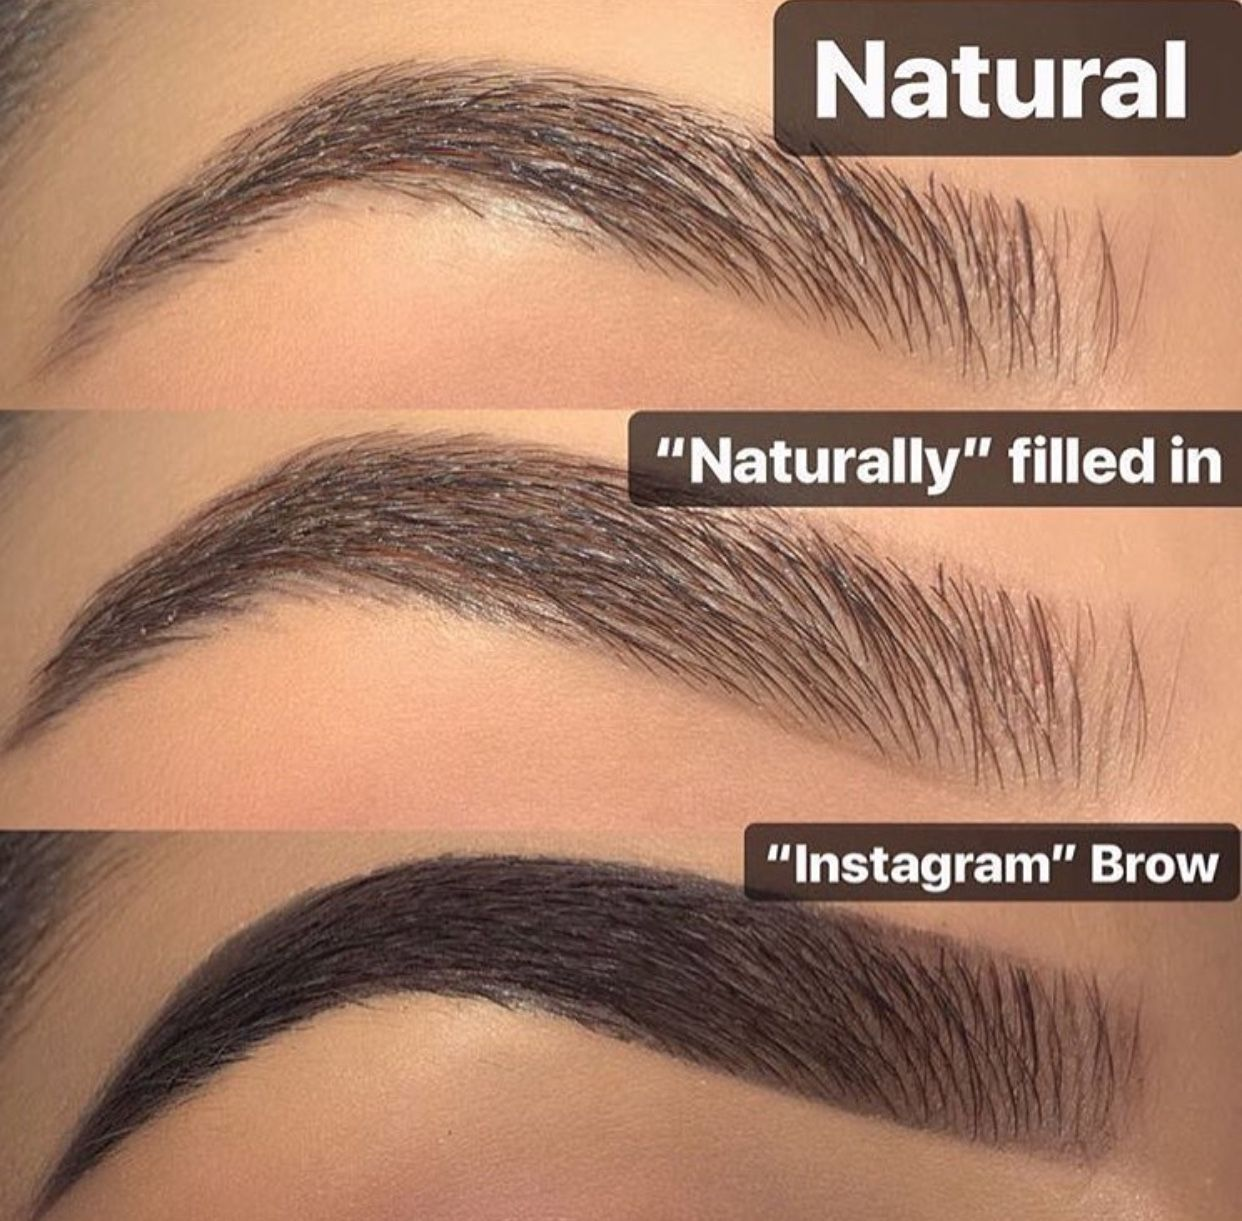 Natural Eyebrows | Brow Tutorial | Instagram Eyebrows | Filled in Brows | Fleeky Brows | Brows on fleek #eyebrows #brows #browsonfleek #eyebrowsonfleek Pin: @amerishabeauty #EyebrowsMicroblading #naturalbrows